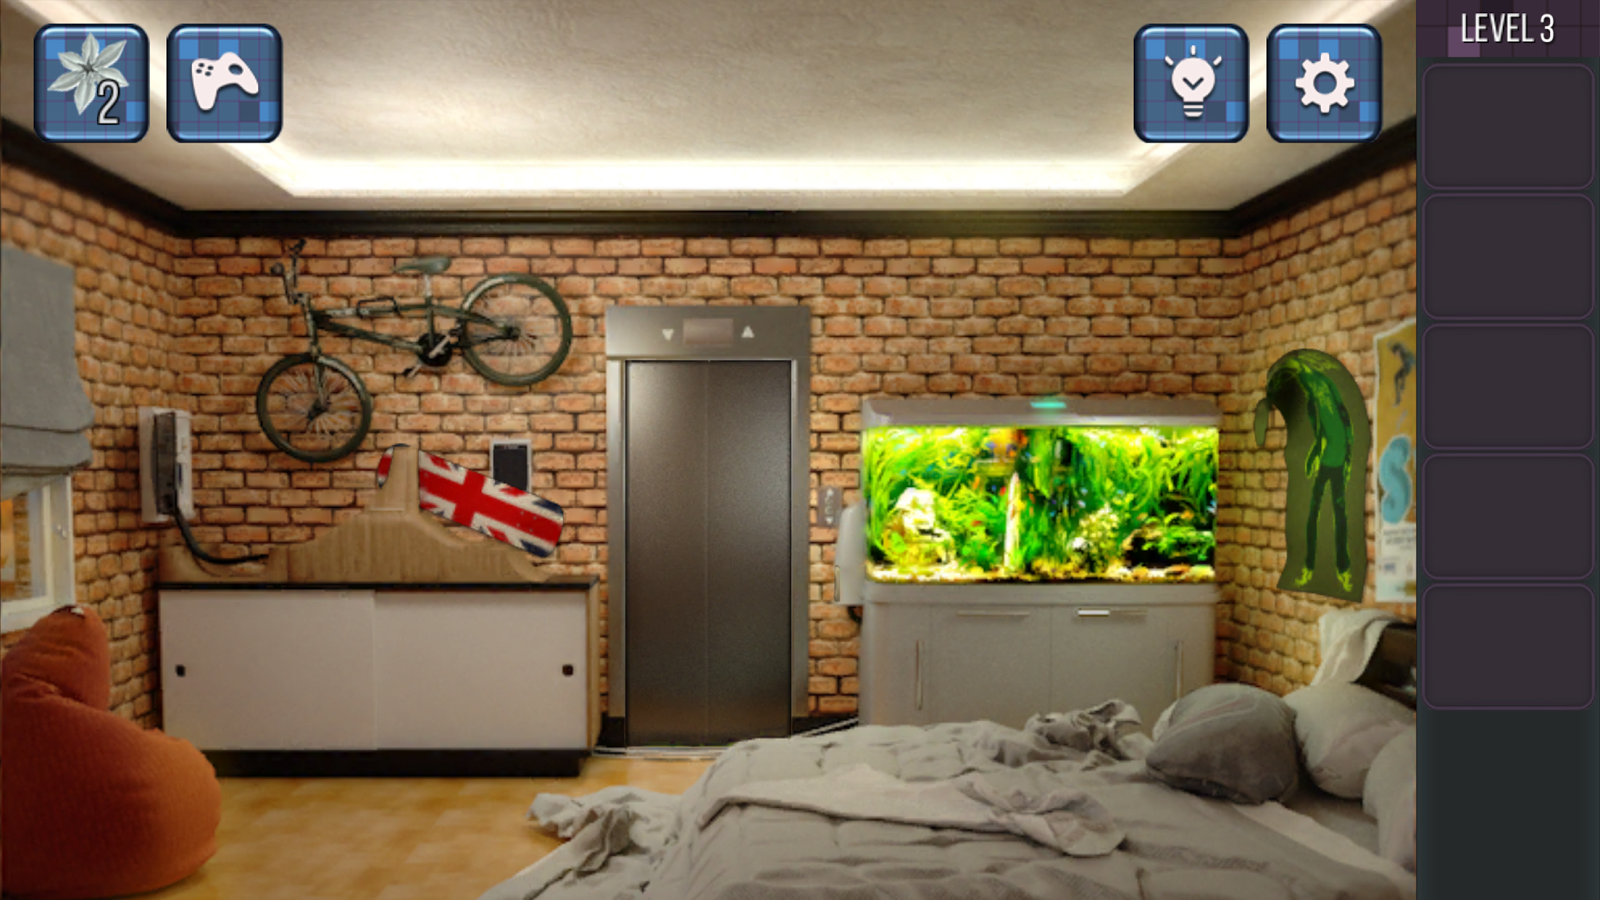 Modern Living Room Escape 2 Walkthrough can you escape 4 - android apps on google play